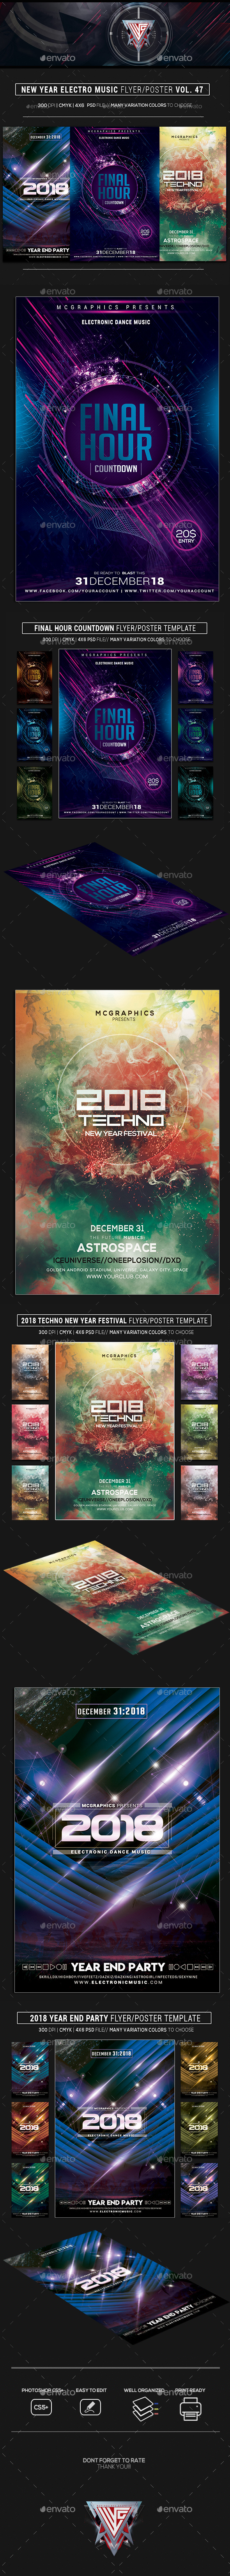 New Year Electro Music Flyer/Poster Bundle Vol. 47 - Events Flyers